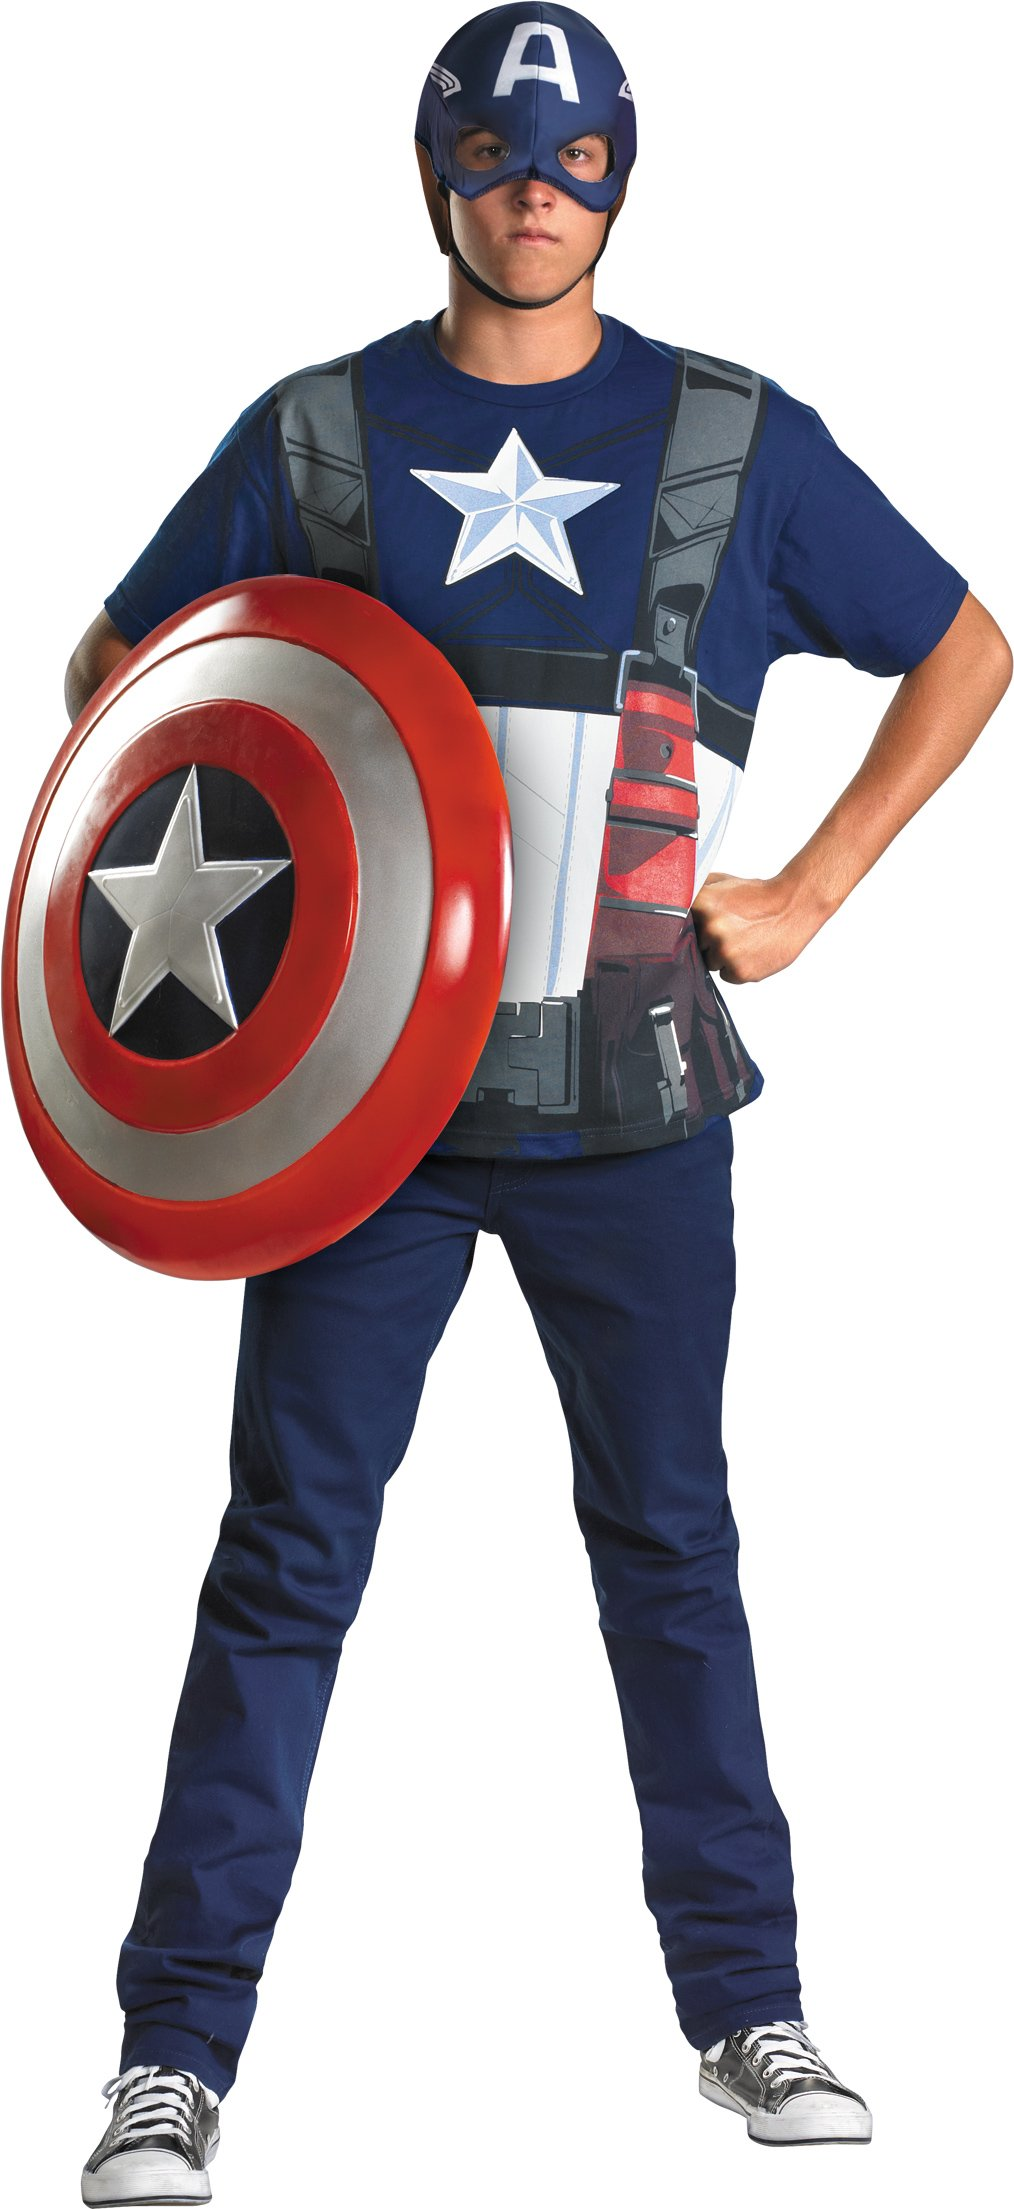 Captain America Adult Costume Kit